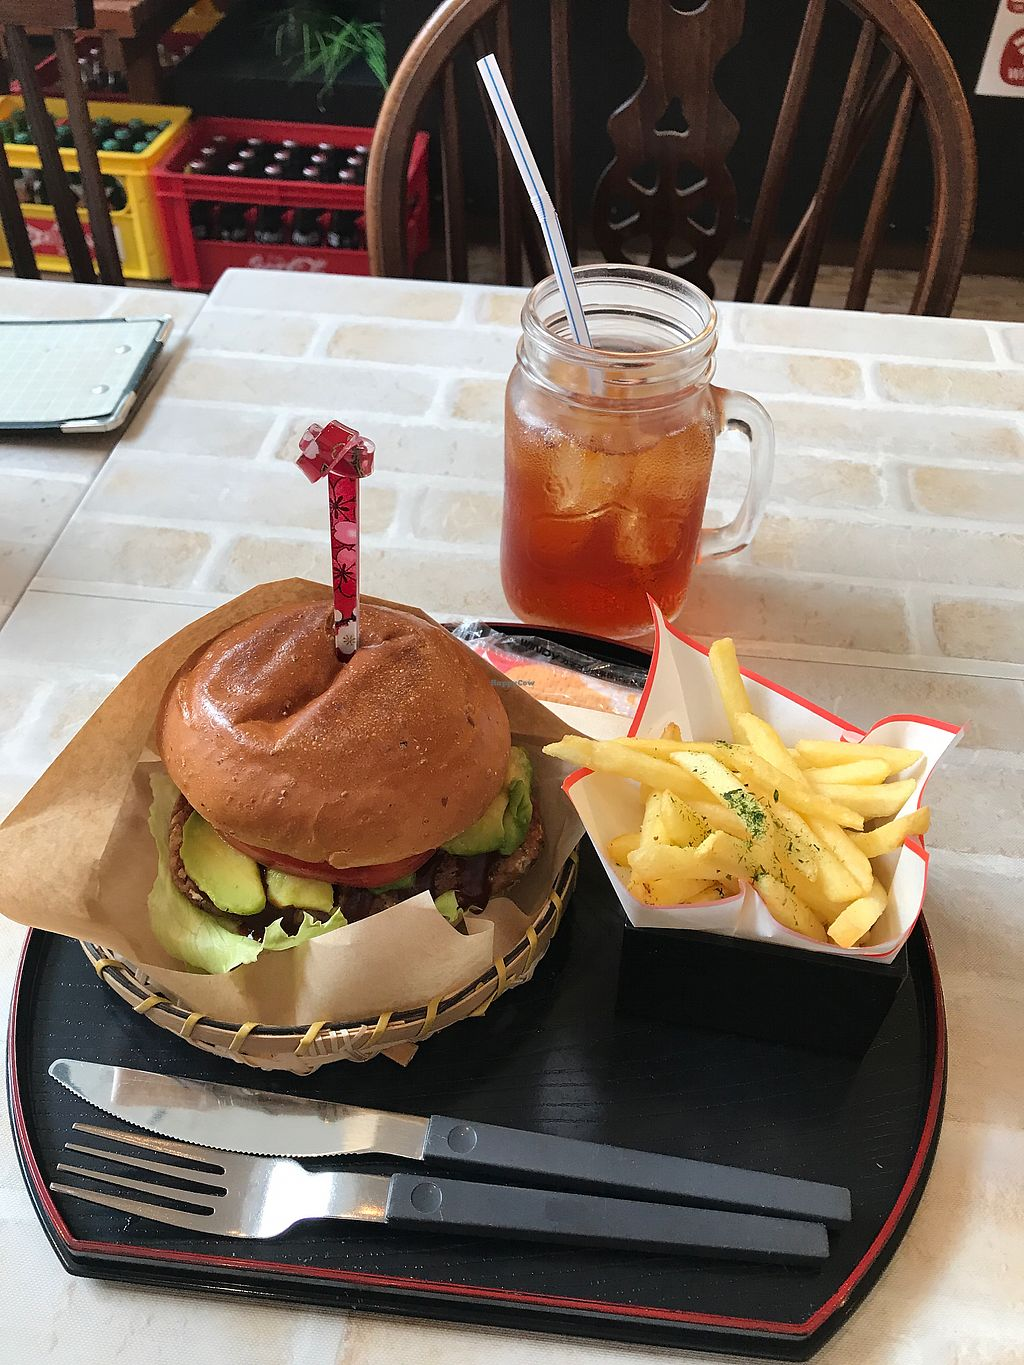 """Photo of Sekai Cafe - Asakusa  by <a href=""""/members/profile/assilemel"""">assilemel</a> <br/>Veg burger <br/> August 31, 2017  - <a href='/contact/abuse/image/56252/299259'>Report</a>"""